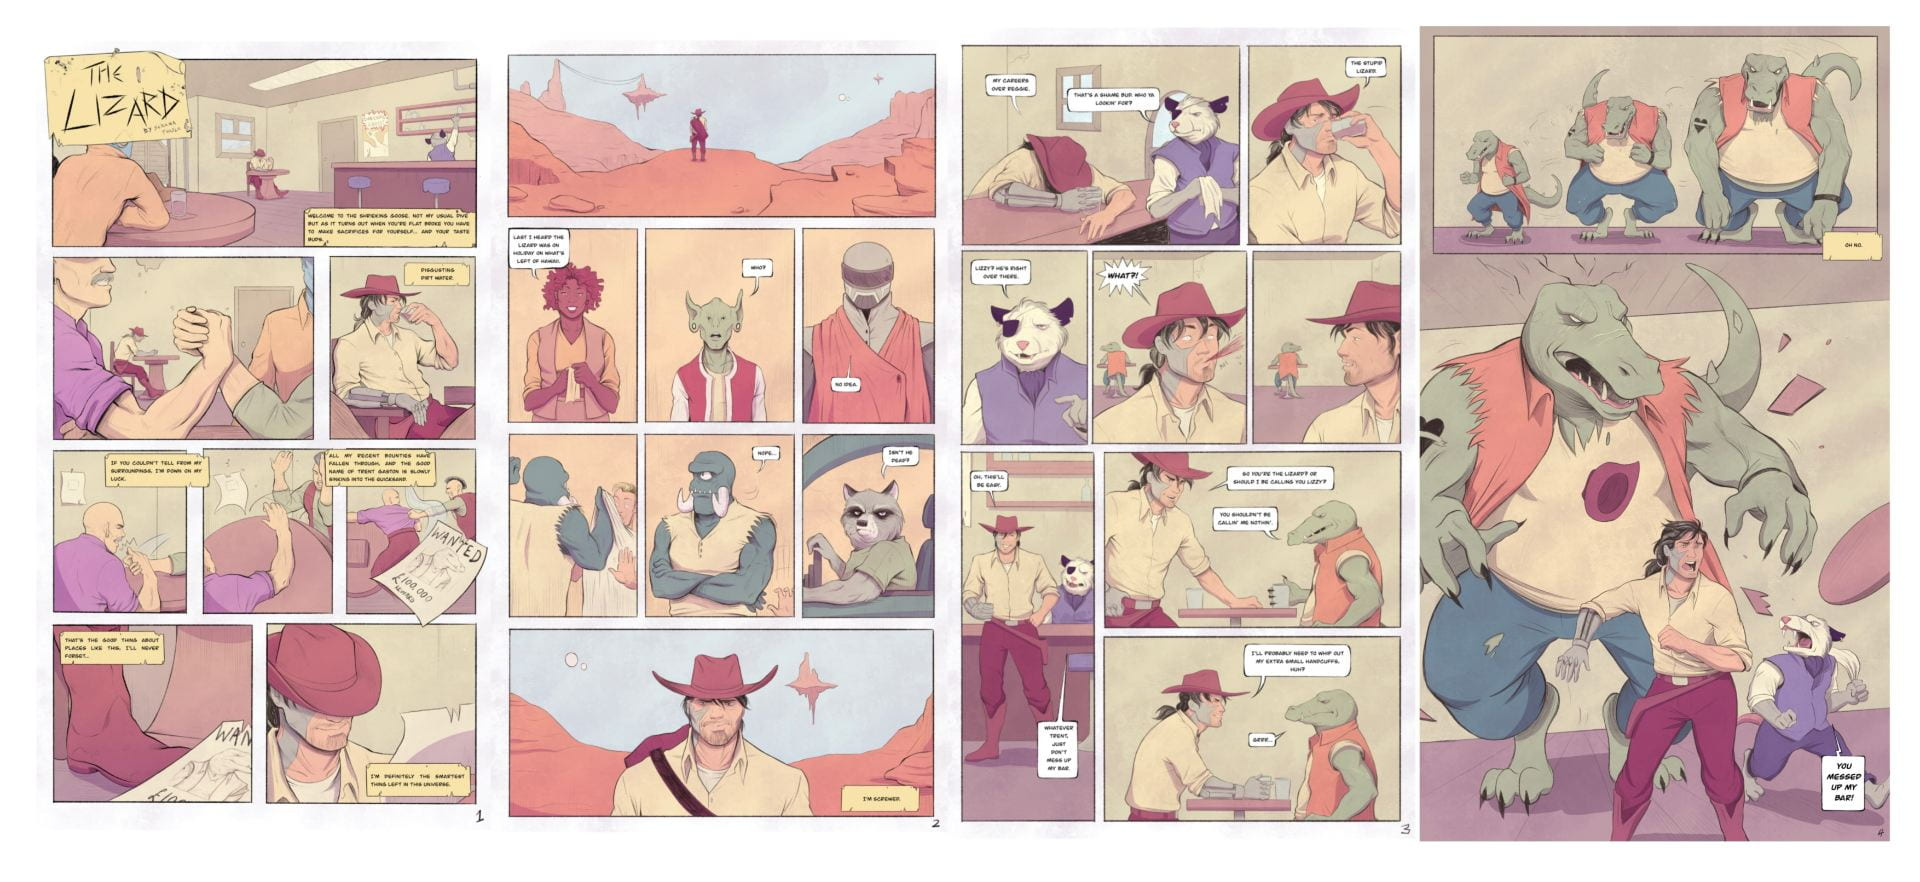 LONGLISTED FOR THE OBSERVER/JONATHAN CAPE GRAPHIC SHORT STORY Serena Turtle